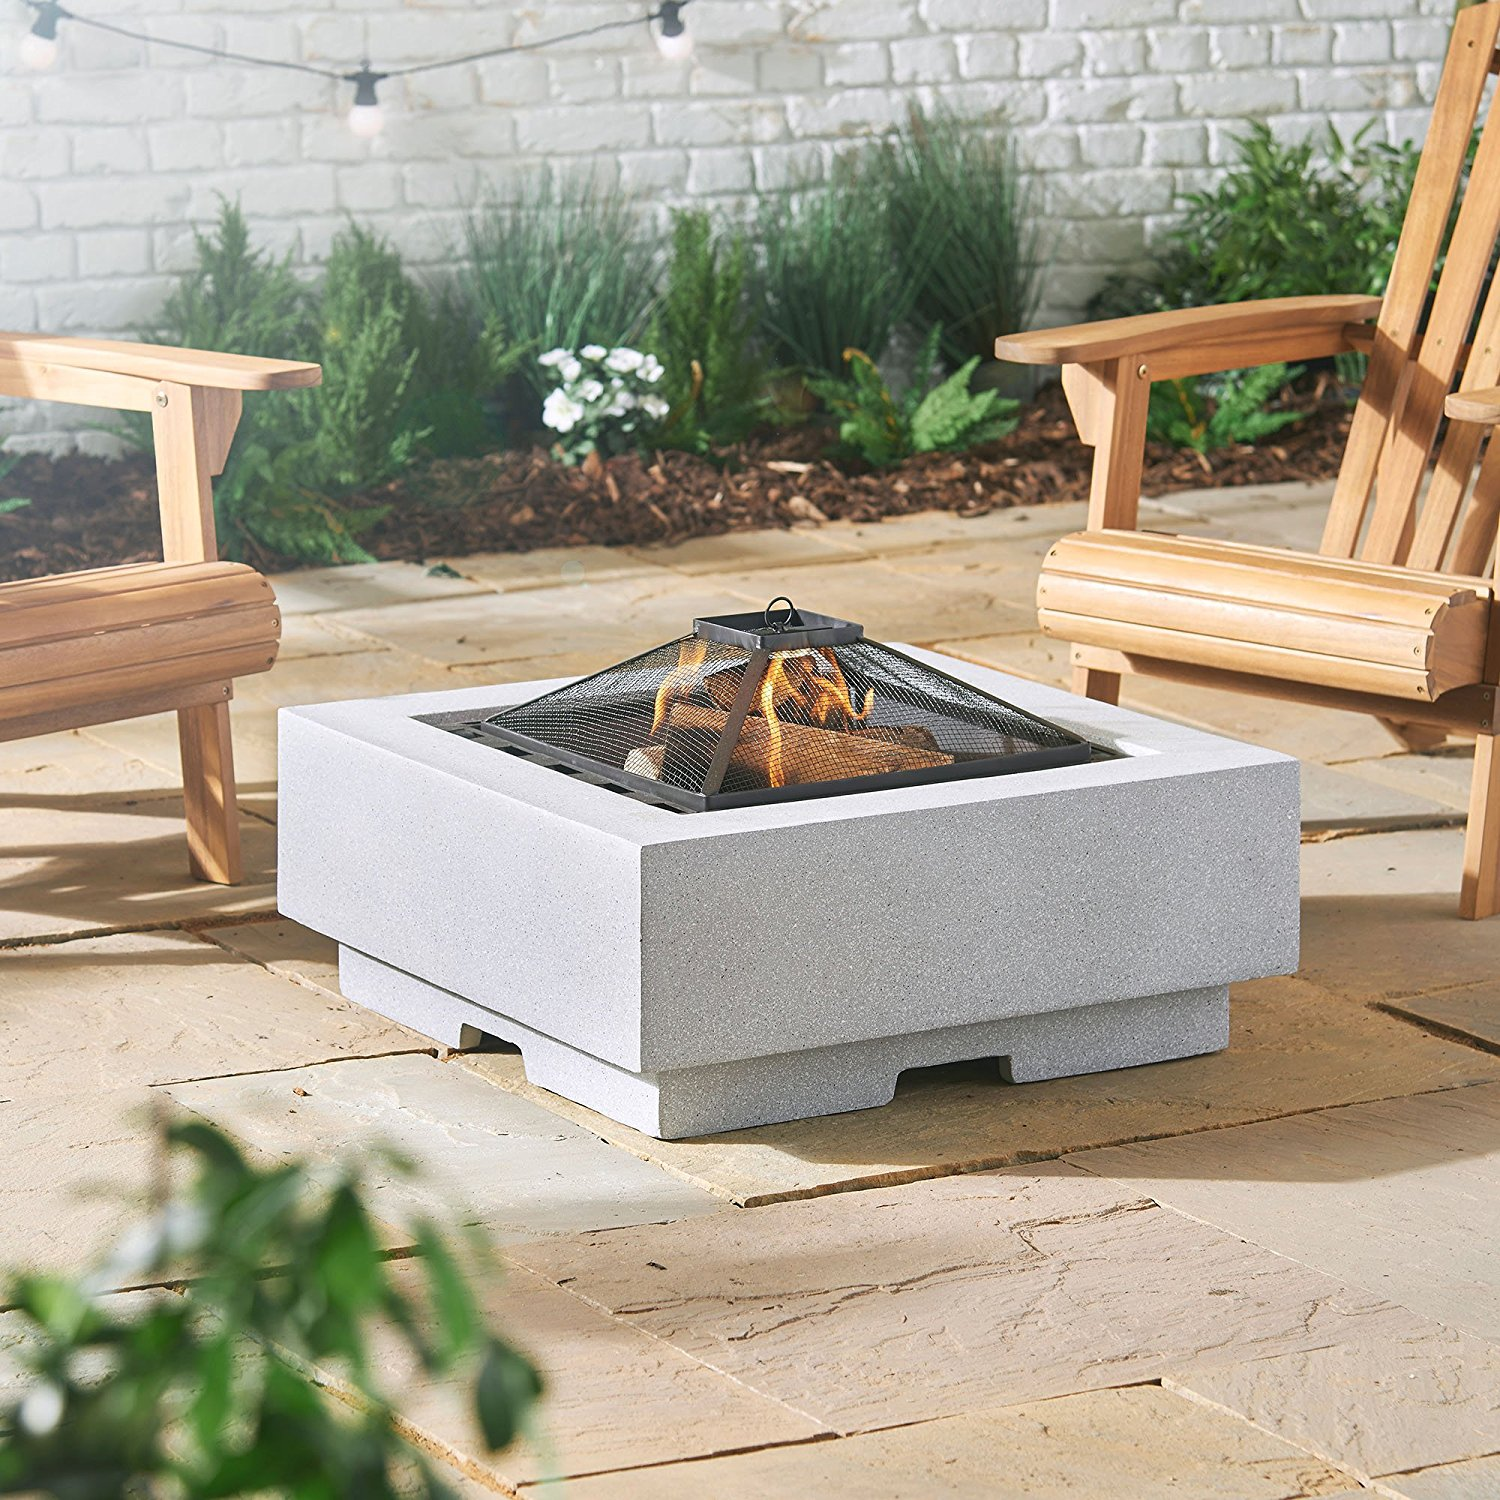 VonHaus Square fire pit and BBQ